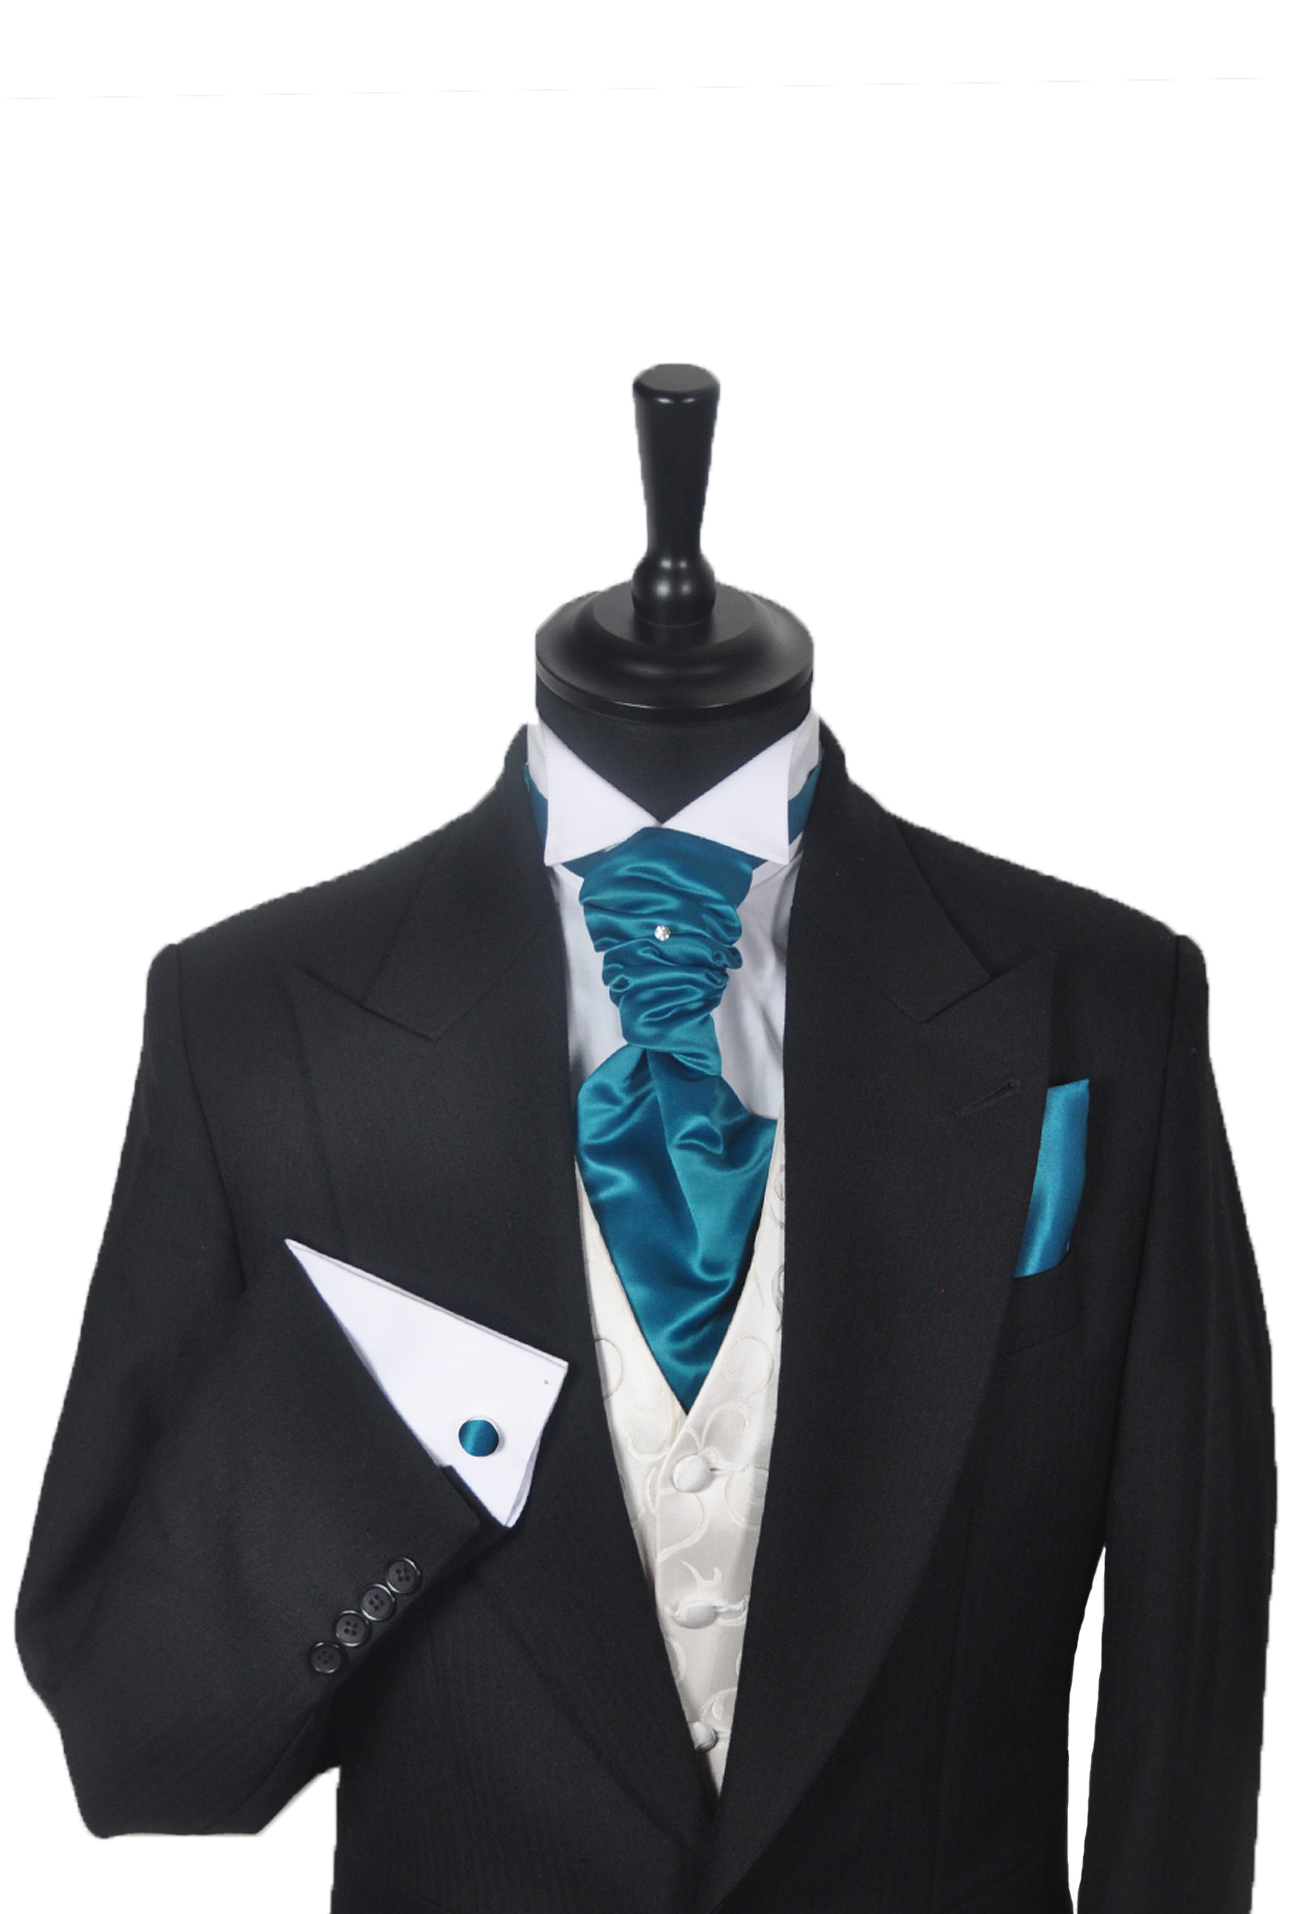 Teal Green Cravat